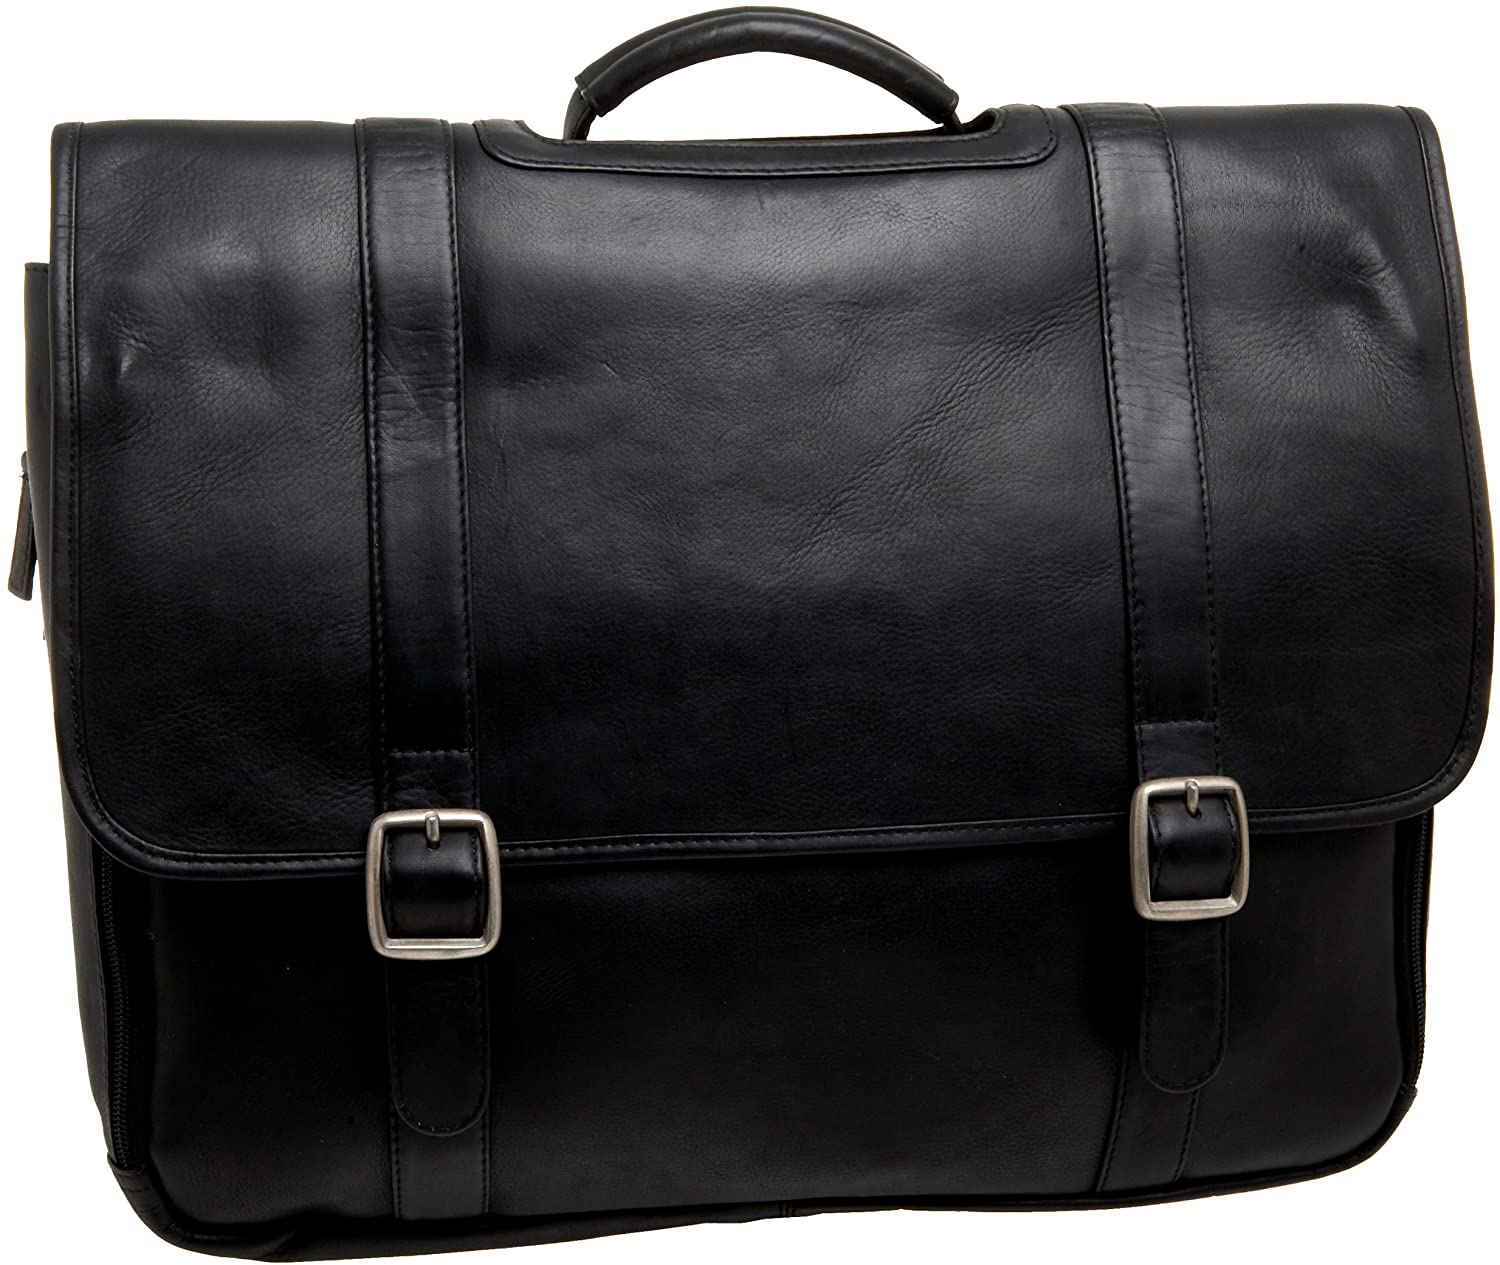 Latico Leathers Heritage Laptop Merger Briefcase, Authentic Luxury Leather, Designer Fashion , Top Quality Leather